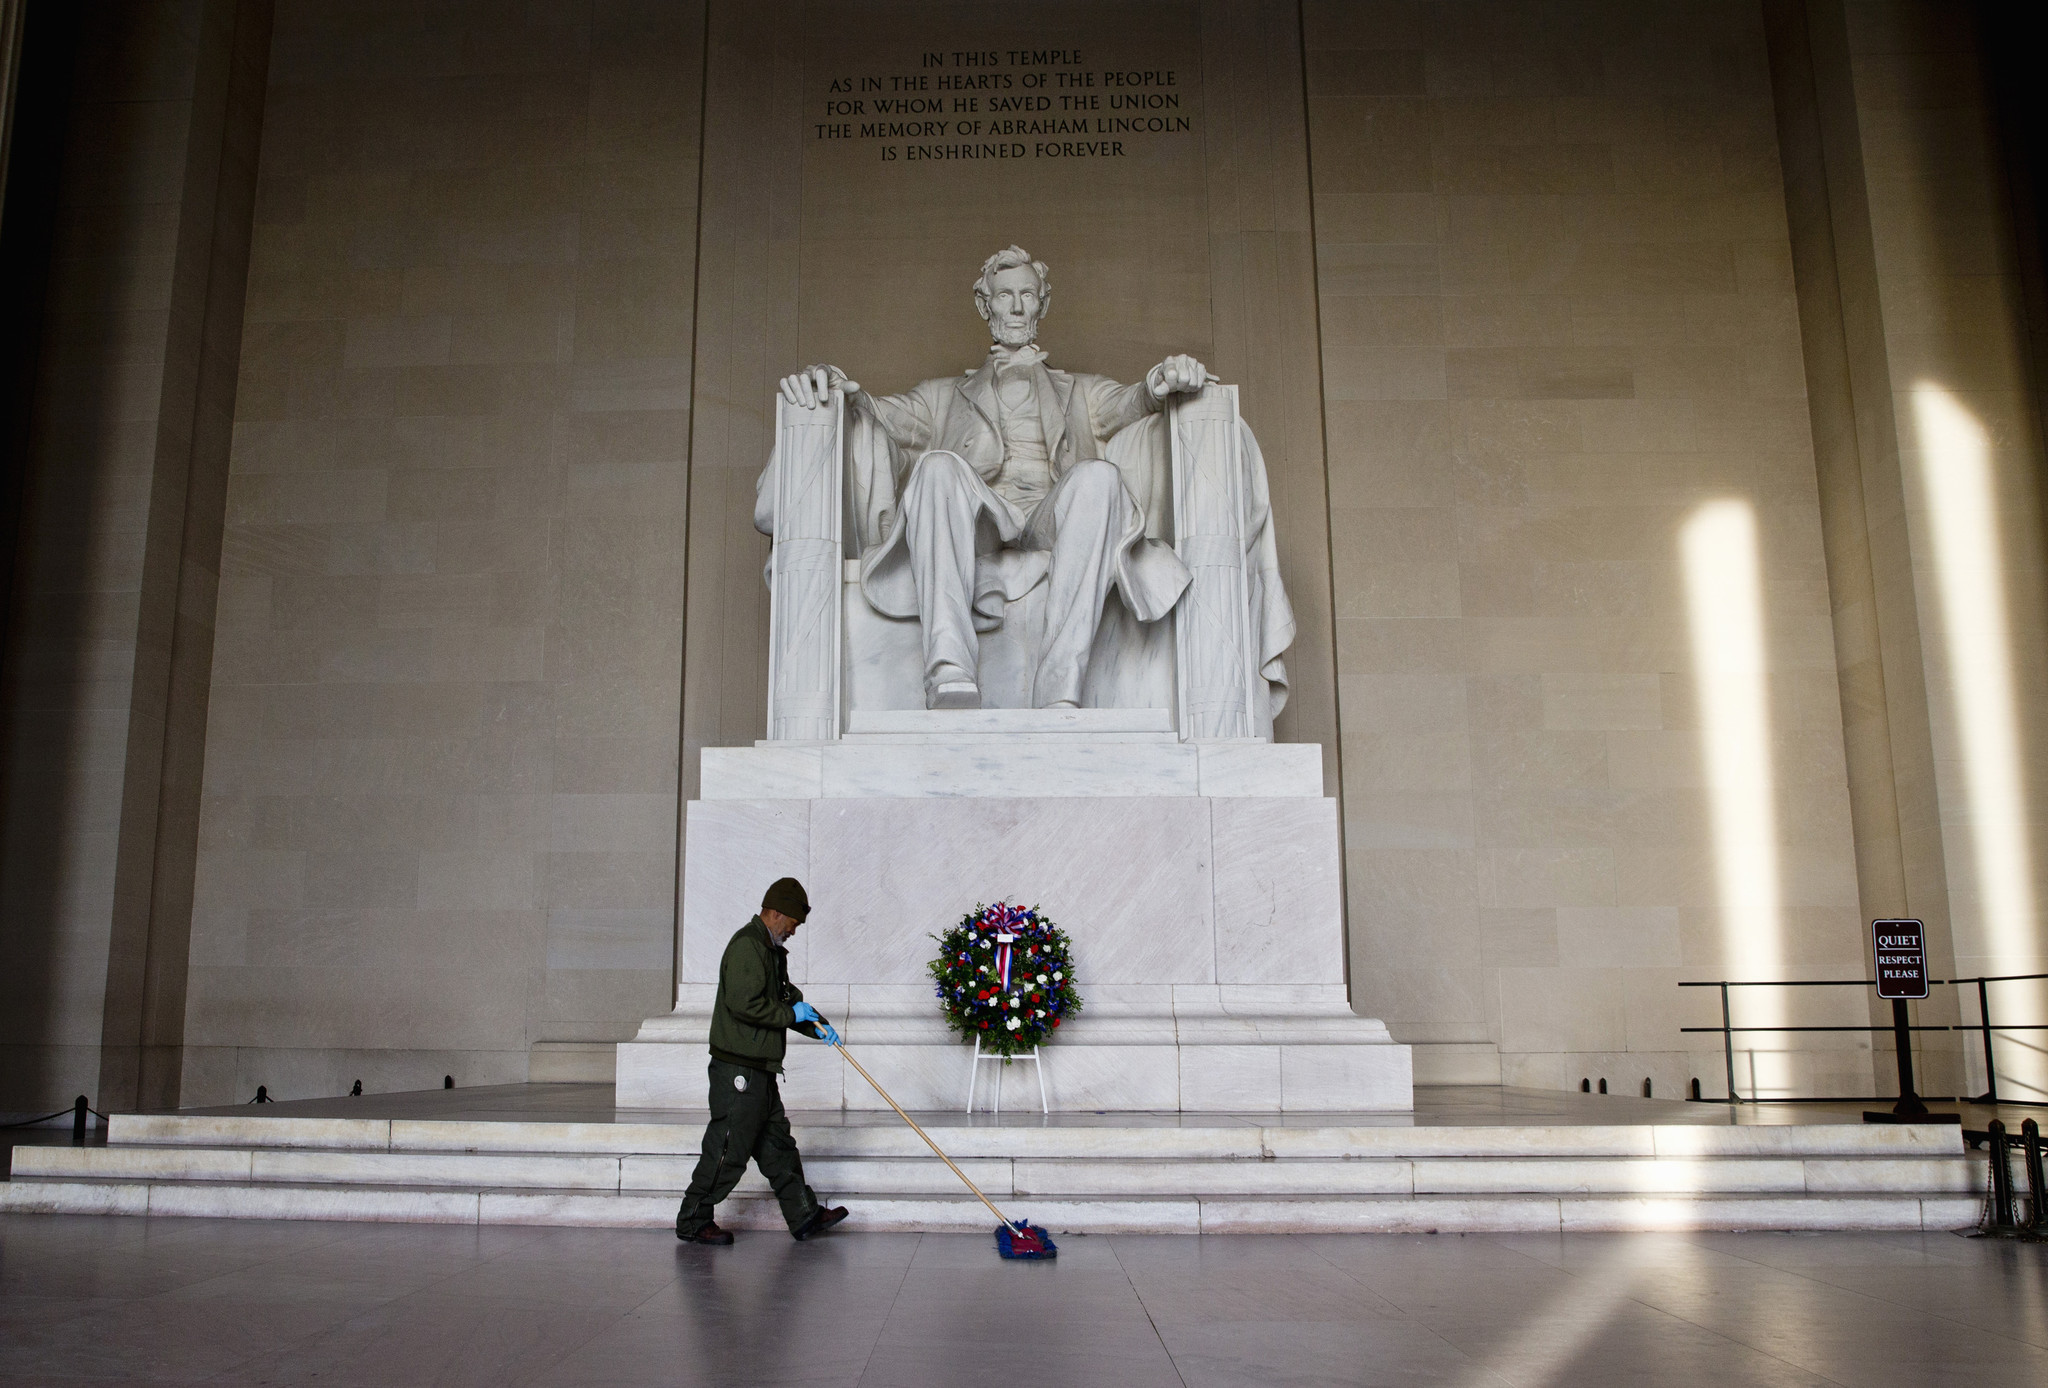 Res: 2048x1388, Lincoln Memorial HD Wallpaper 9 - 2048 X 1388